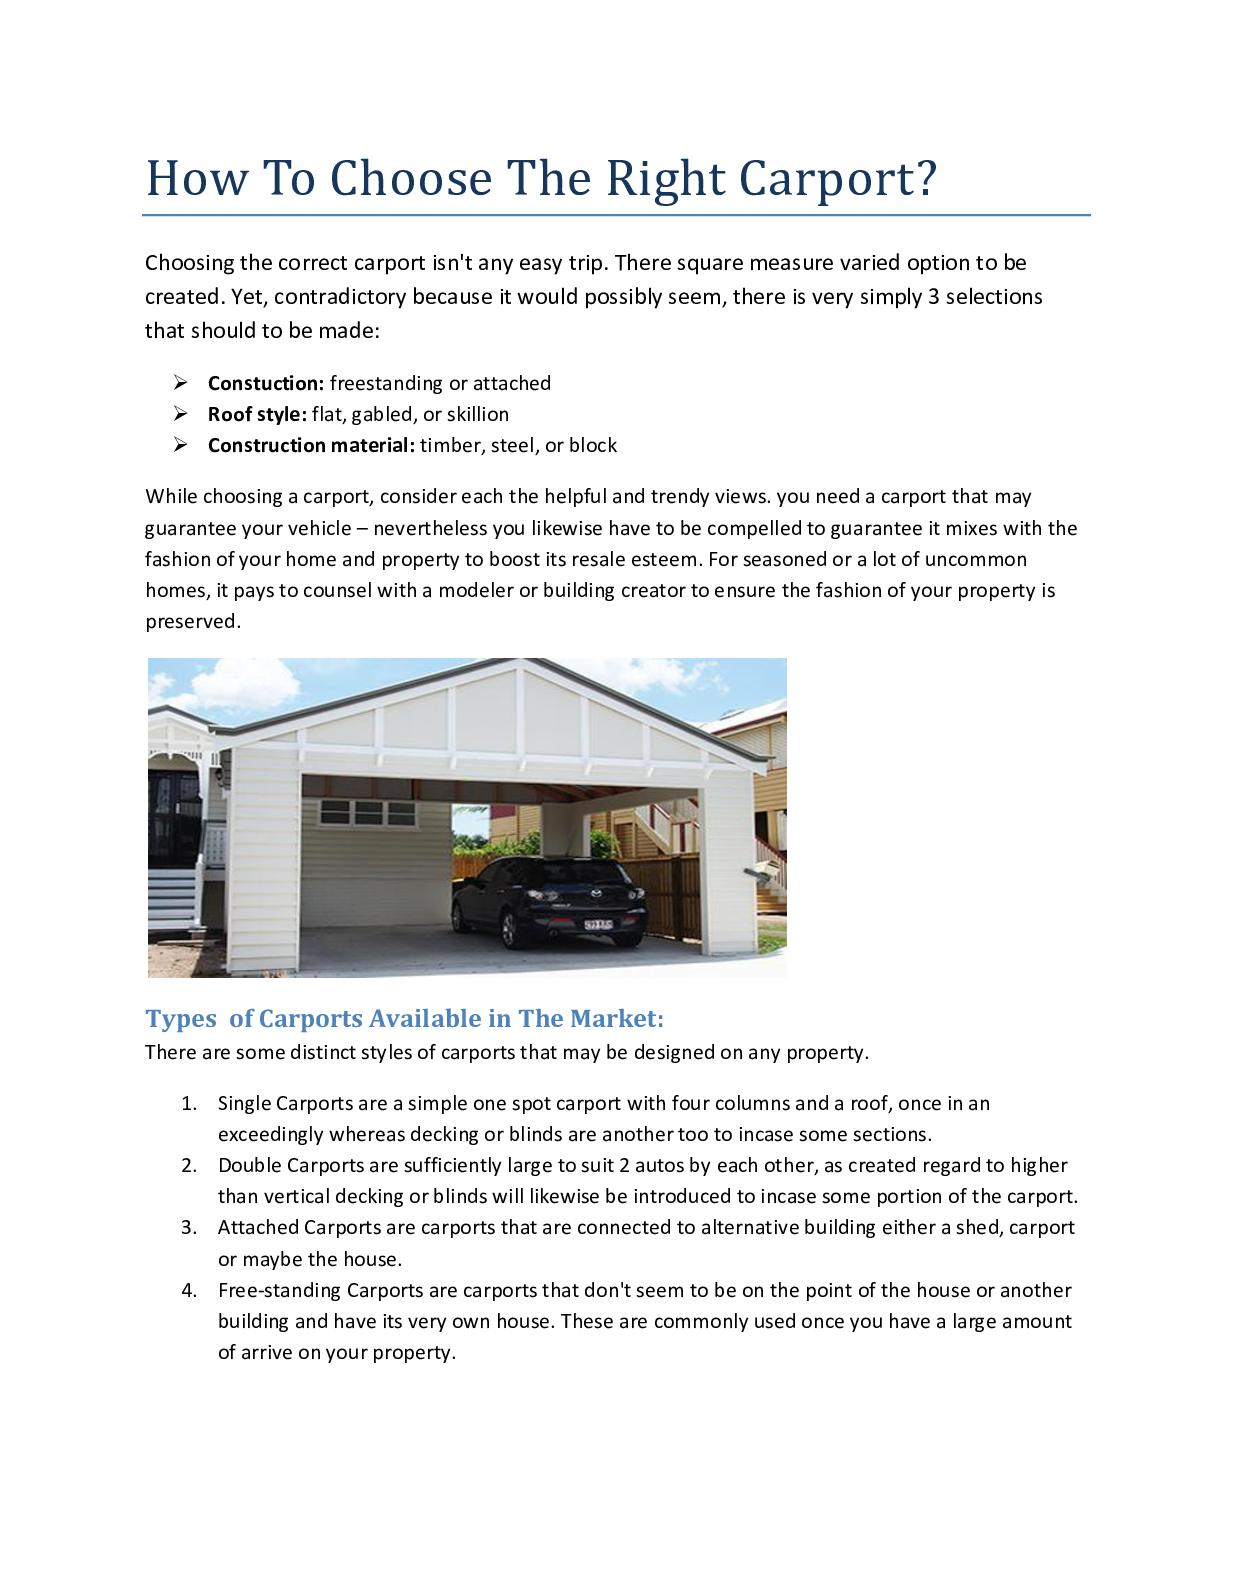 Calameo How To Choose The Right Carport